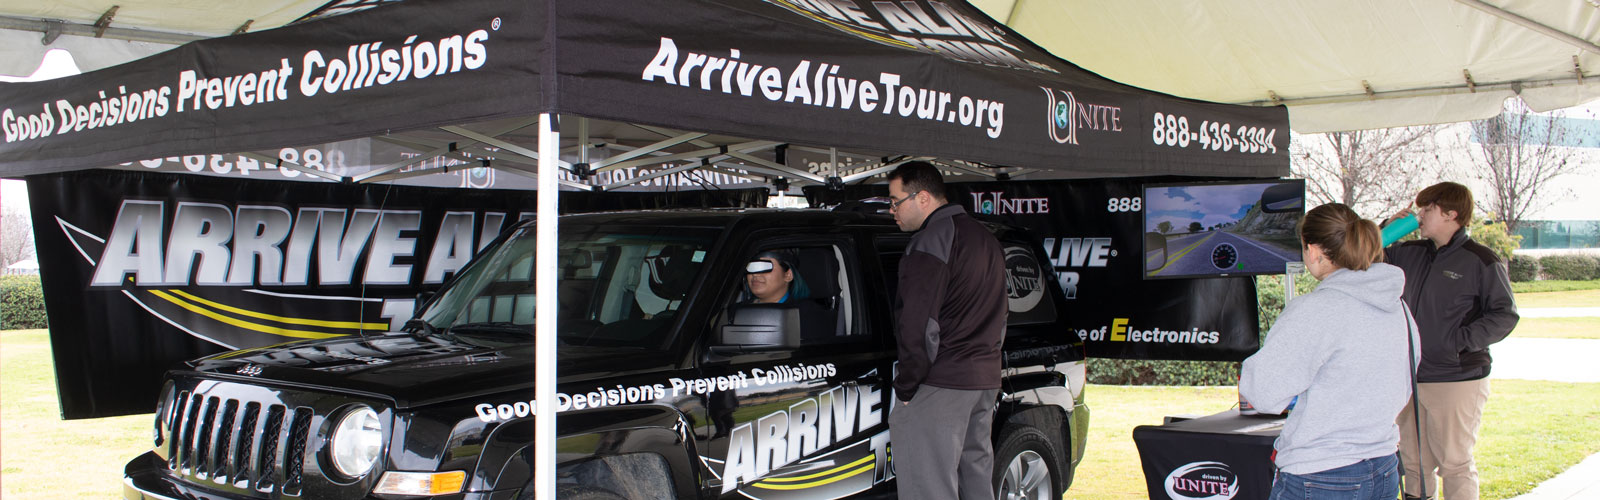 Arrive Alive tour bus on campus at CCC